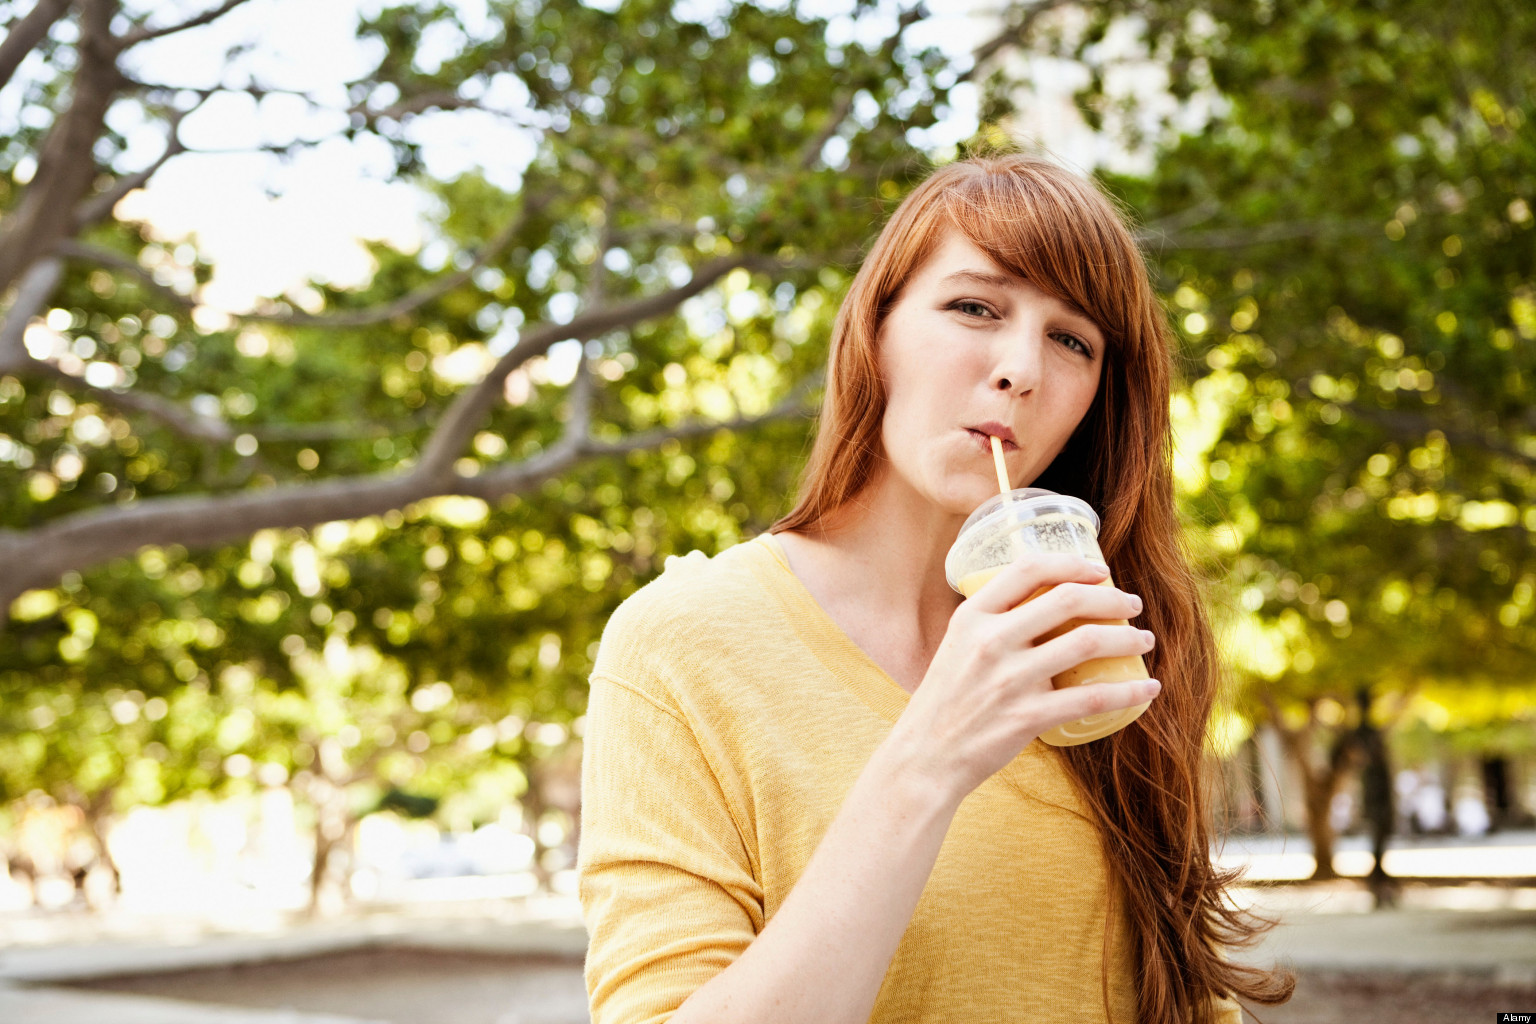 Portrait of young woman drinking milkshake in park